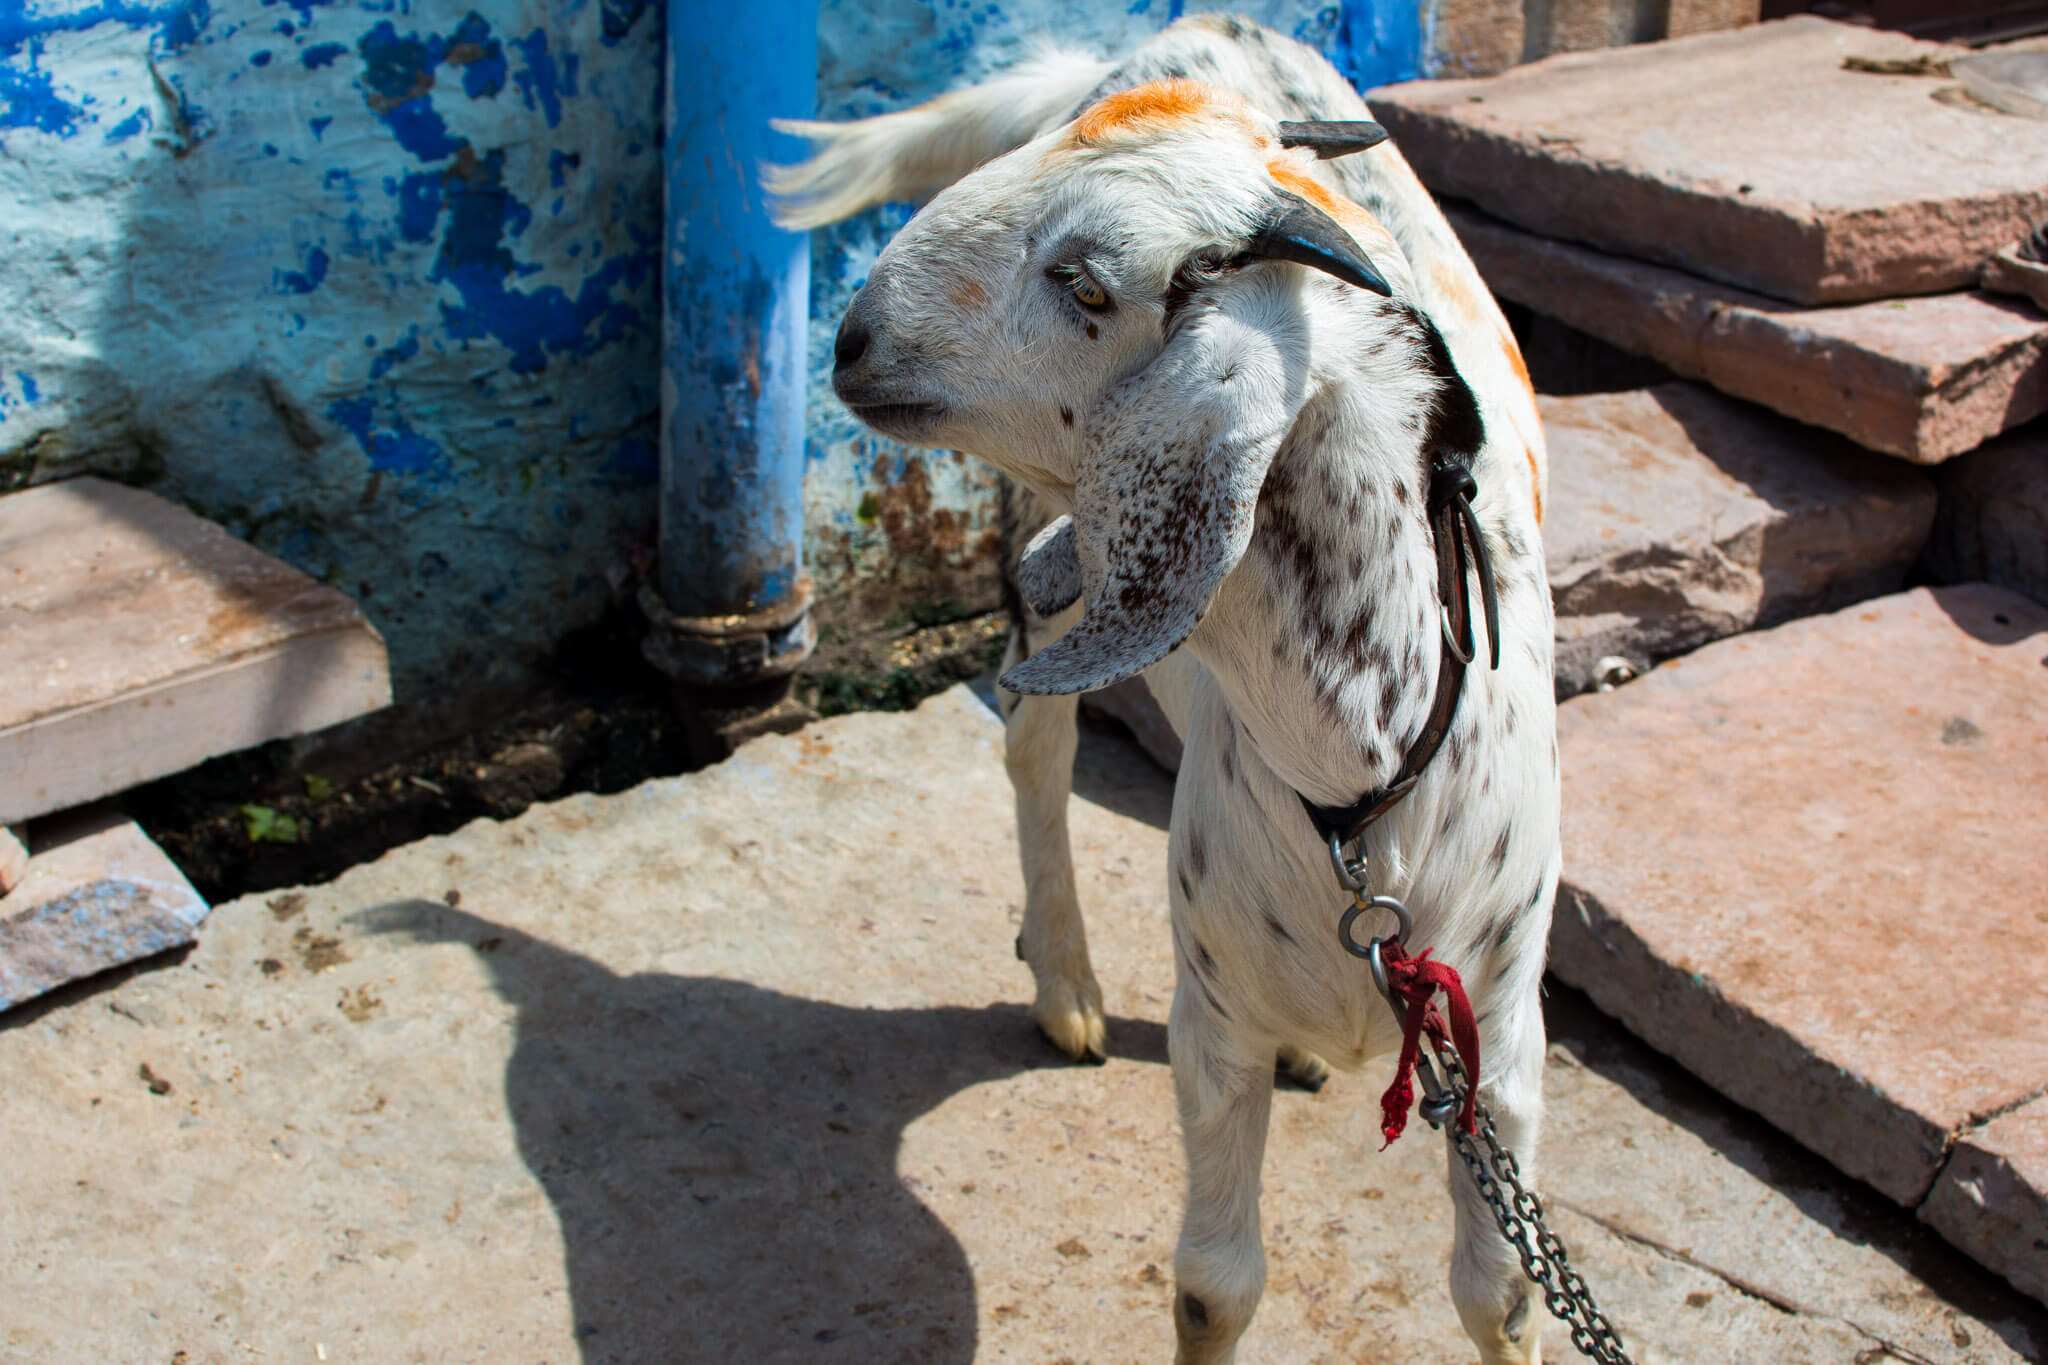 The pet goat of Jodhpur